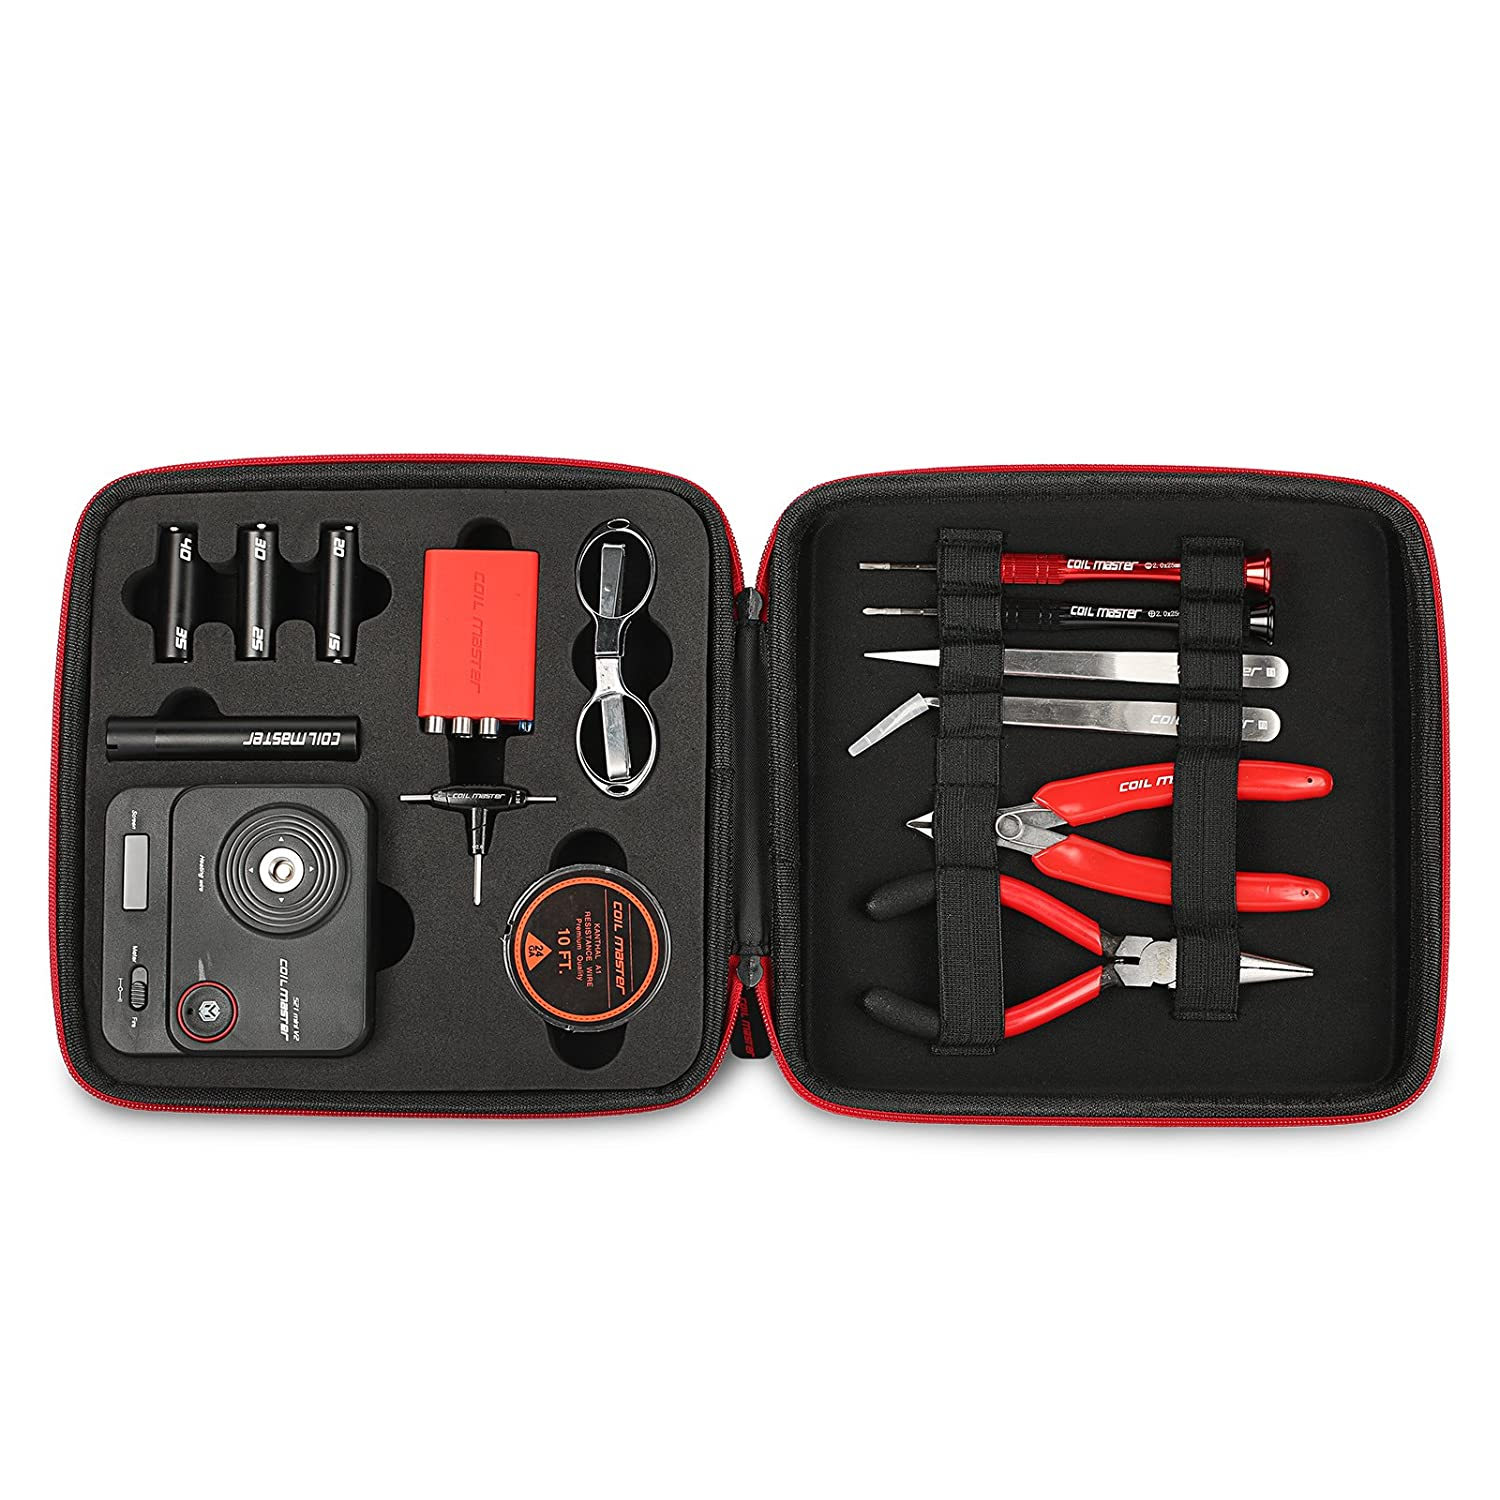 Coil Master 100% authentische DIY KIT V3 Tool SET mit spätesten ...